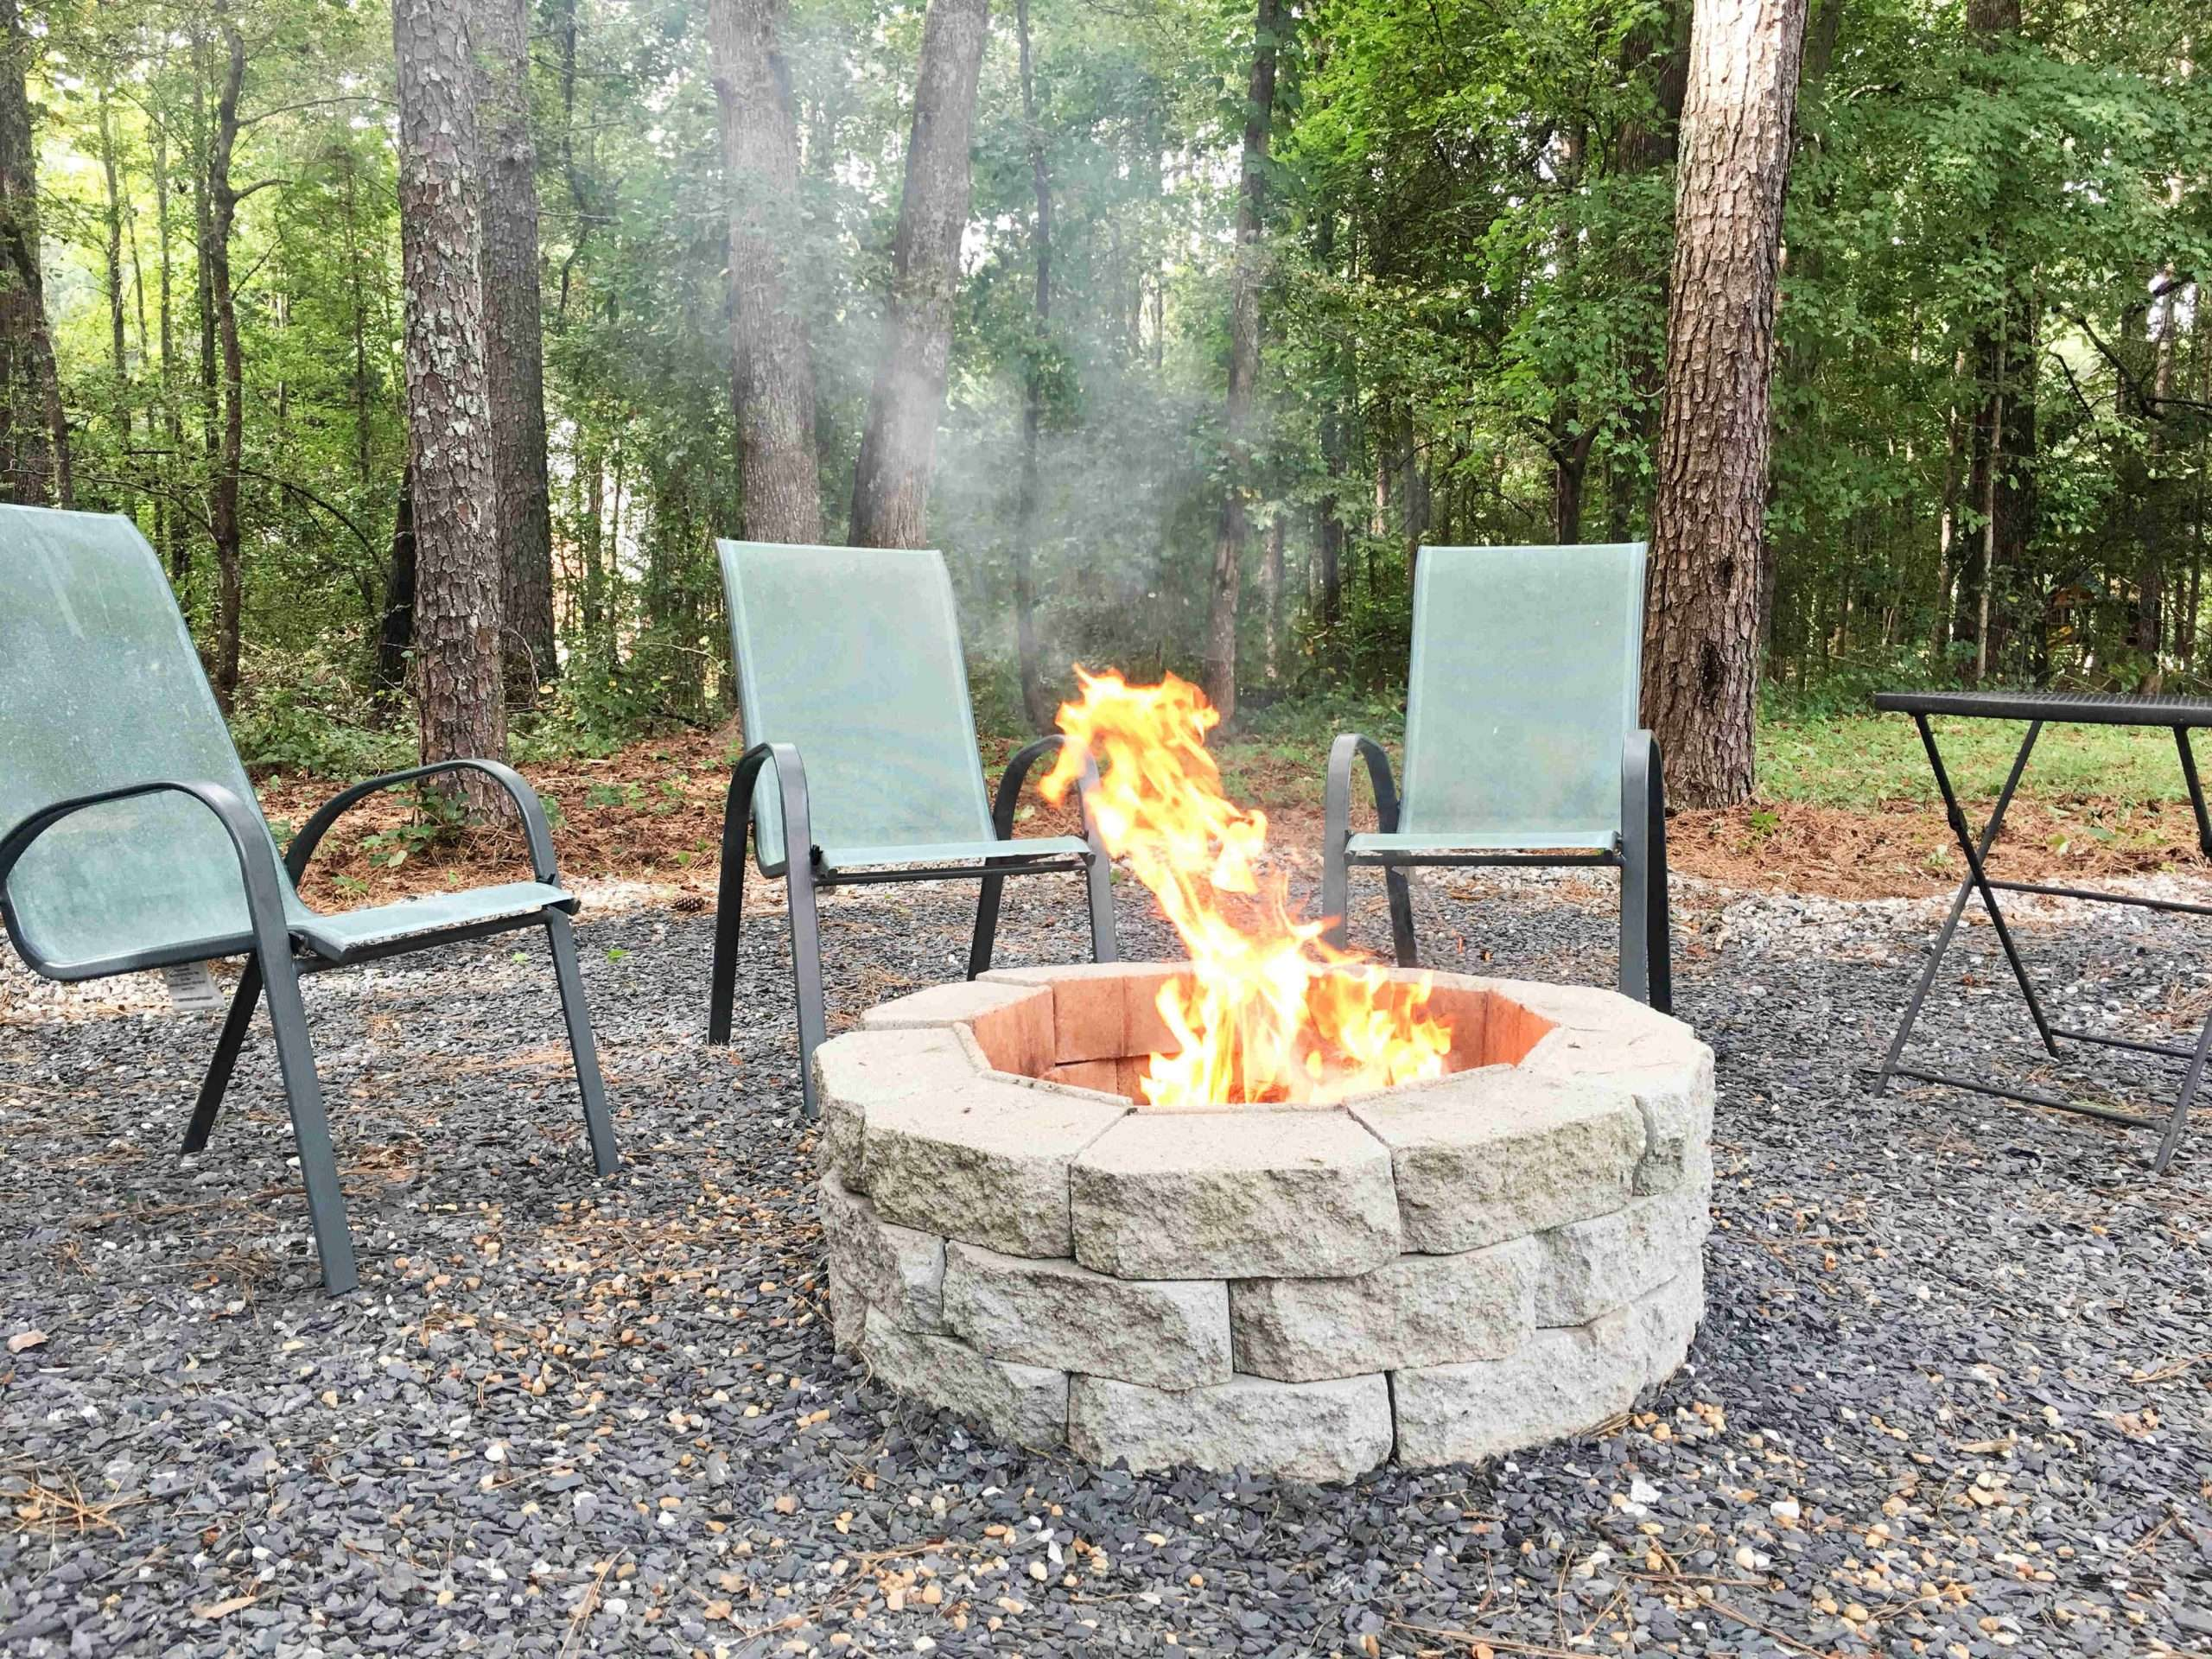 How to Make a DIY Fire Pit in Your Backyard